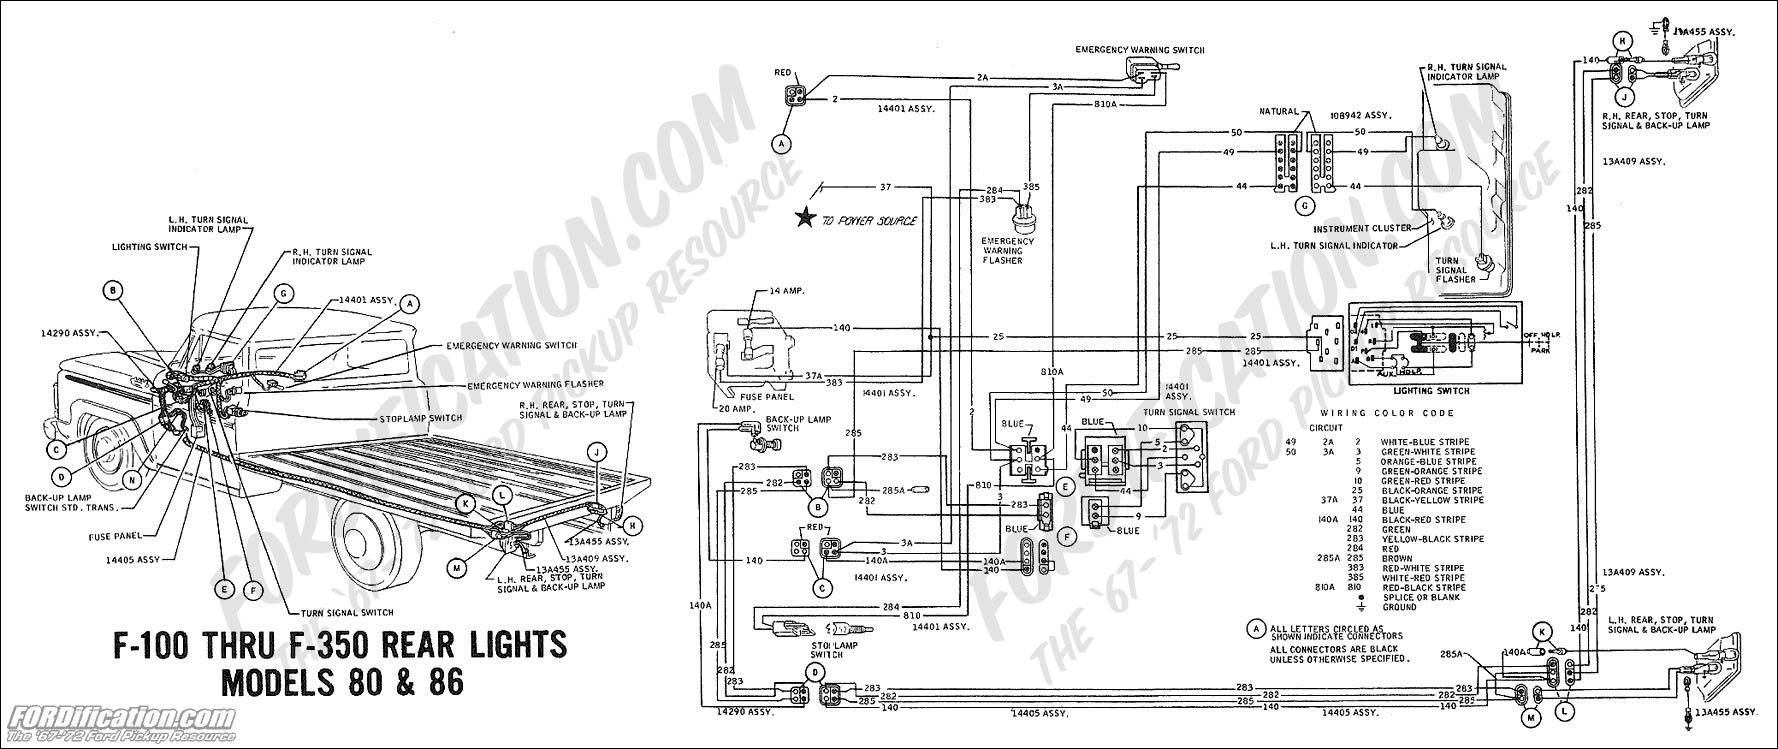 wiring_69rearlights mdls80 86 ford truck technical drawings and schematics section h wiring 2013 Ford F350 Wiring Diagram at bayanpartner.co